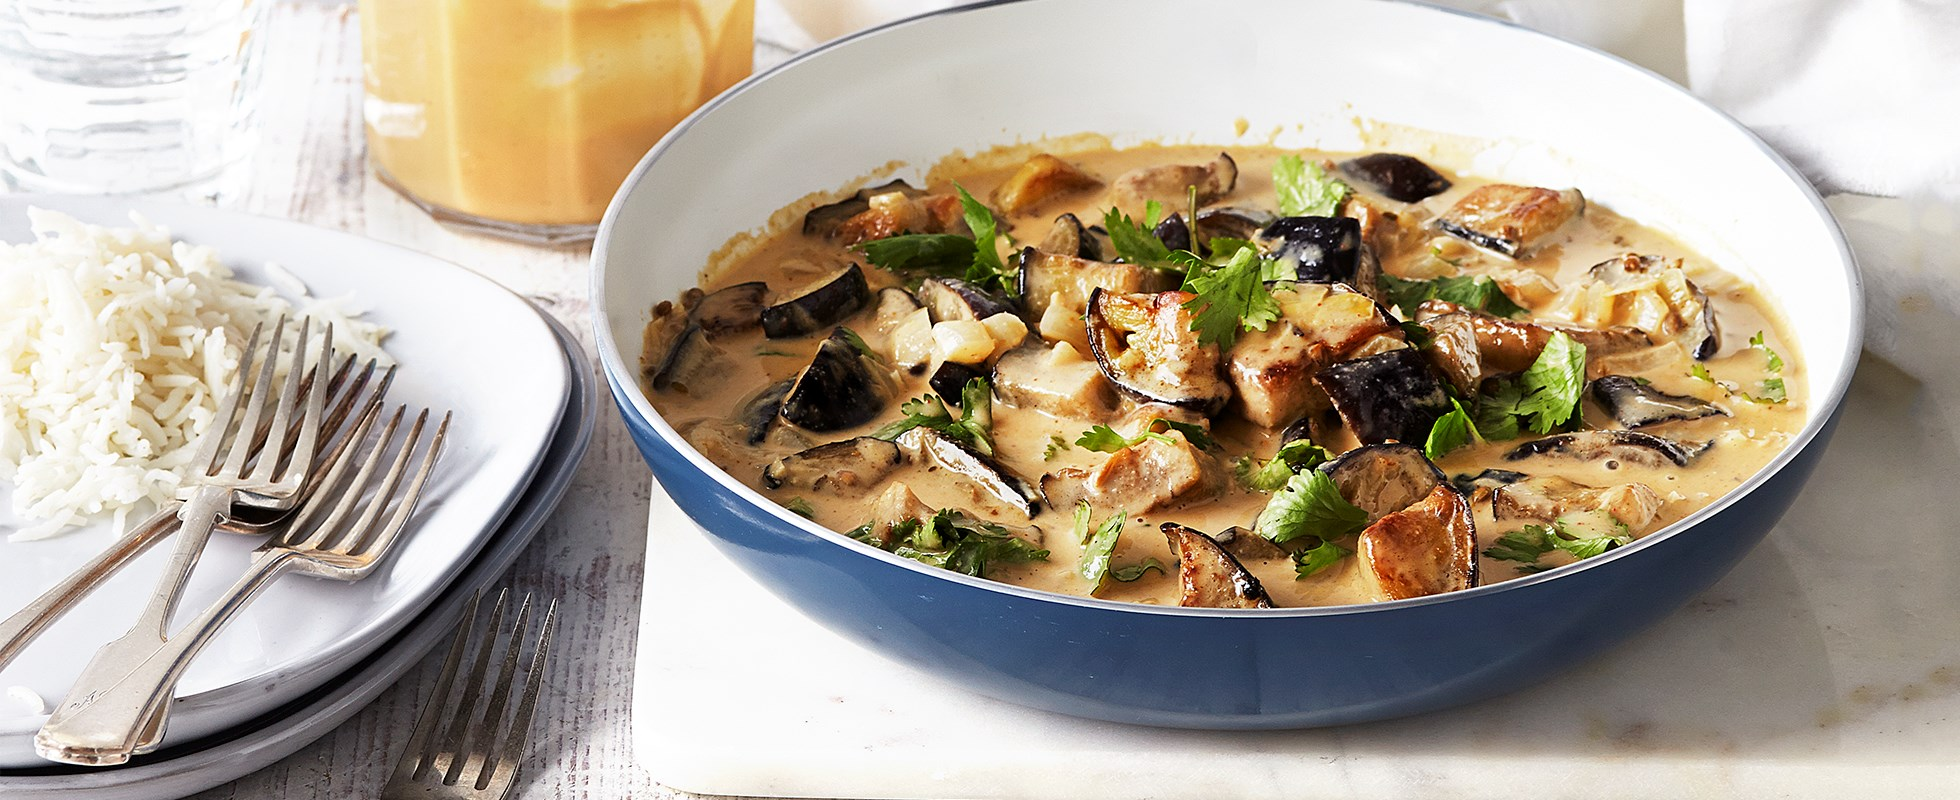 23 best easy curry recipes curry ideas olive magazine coconut and peanut aubergine curry this creamy coconut and peanut aubergine curry is vegetarian under 300 calories forumfinder Images